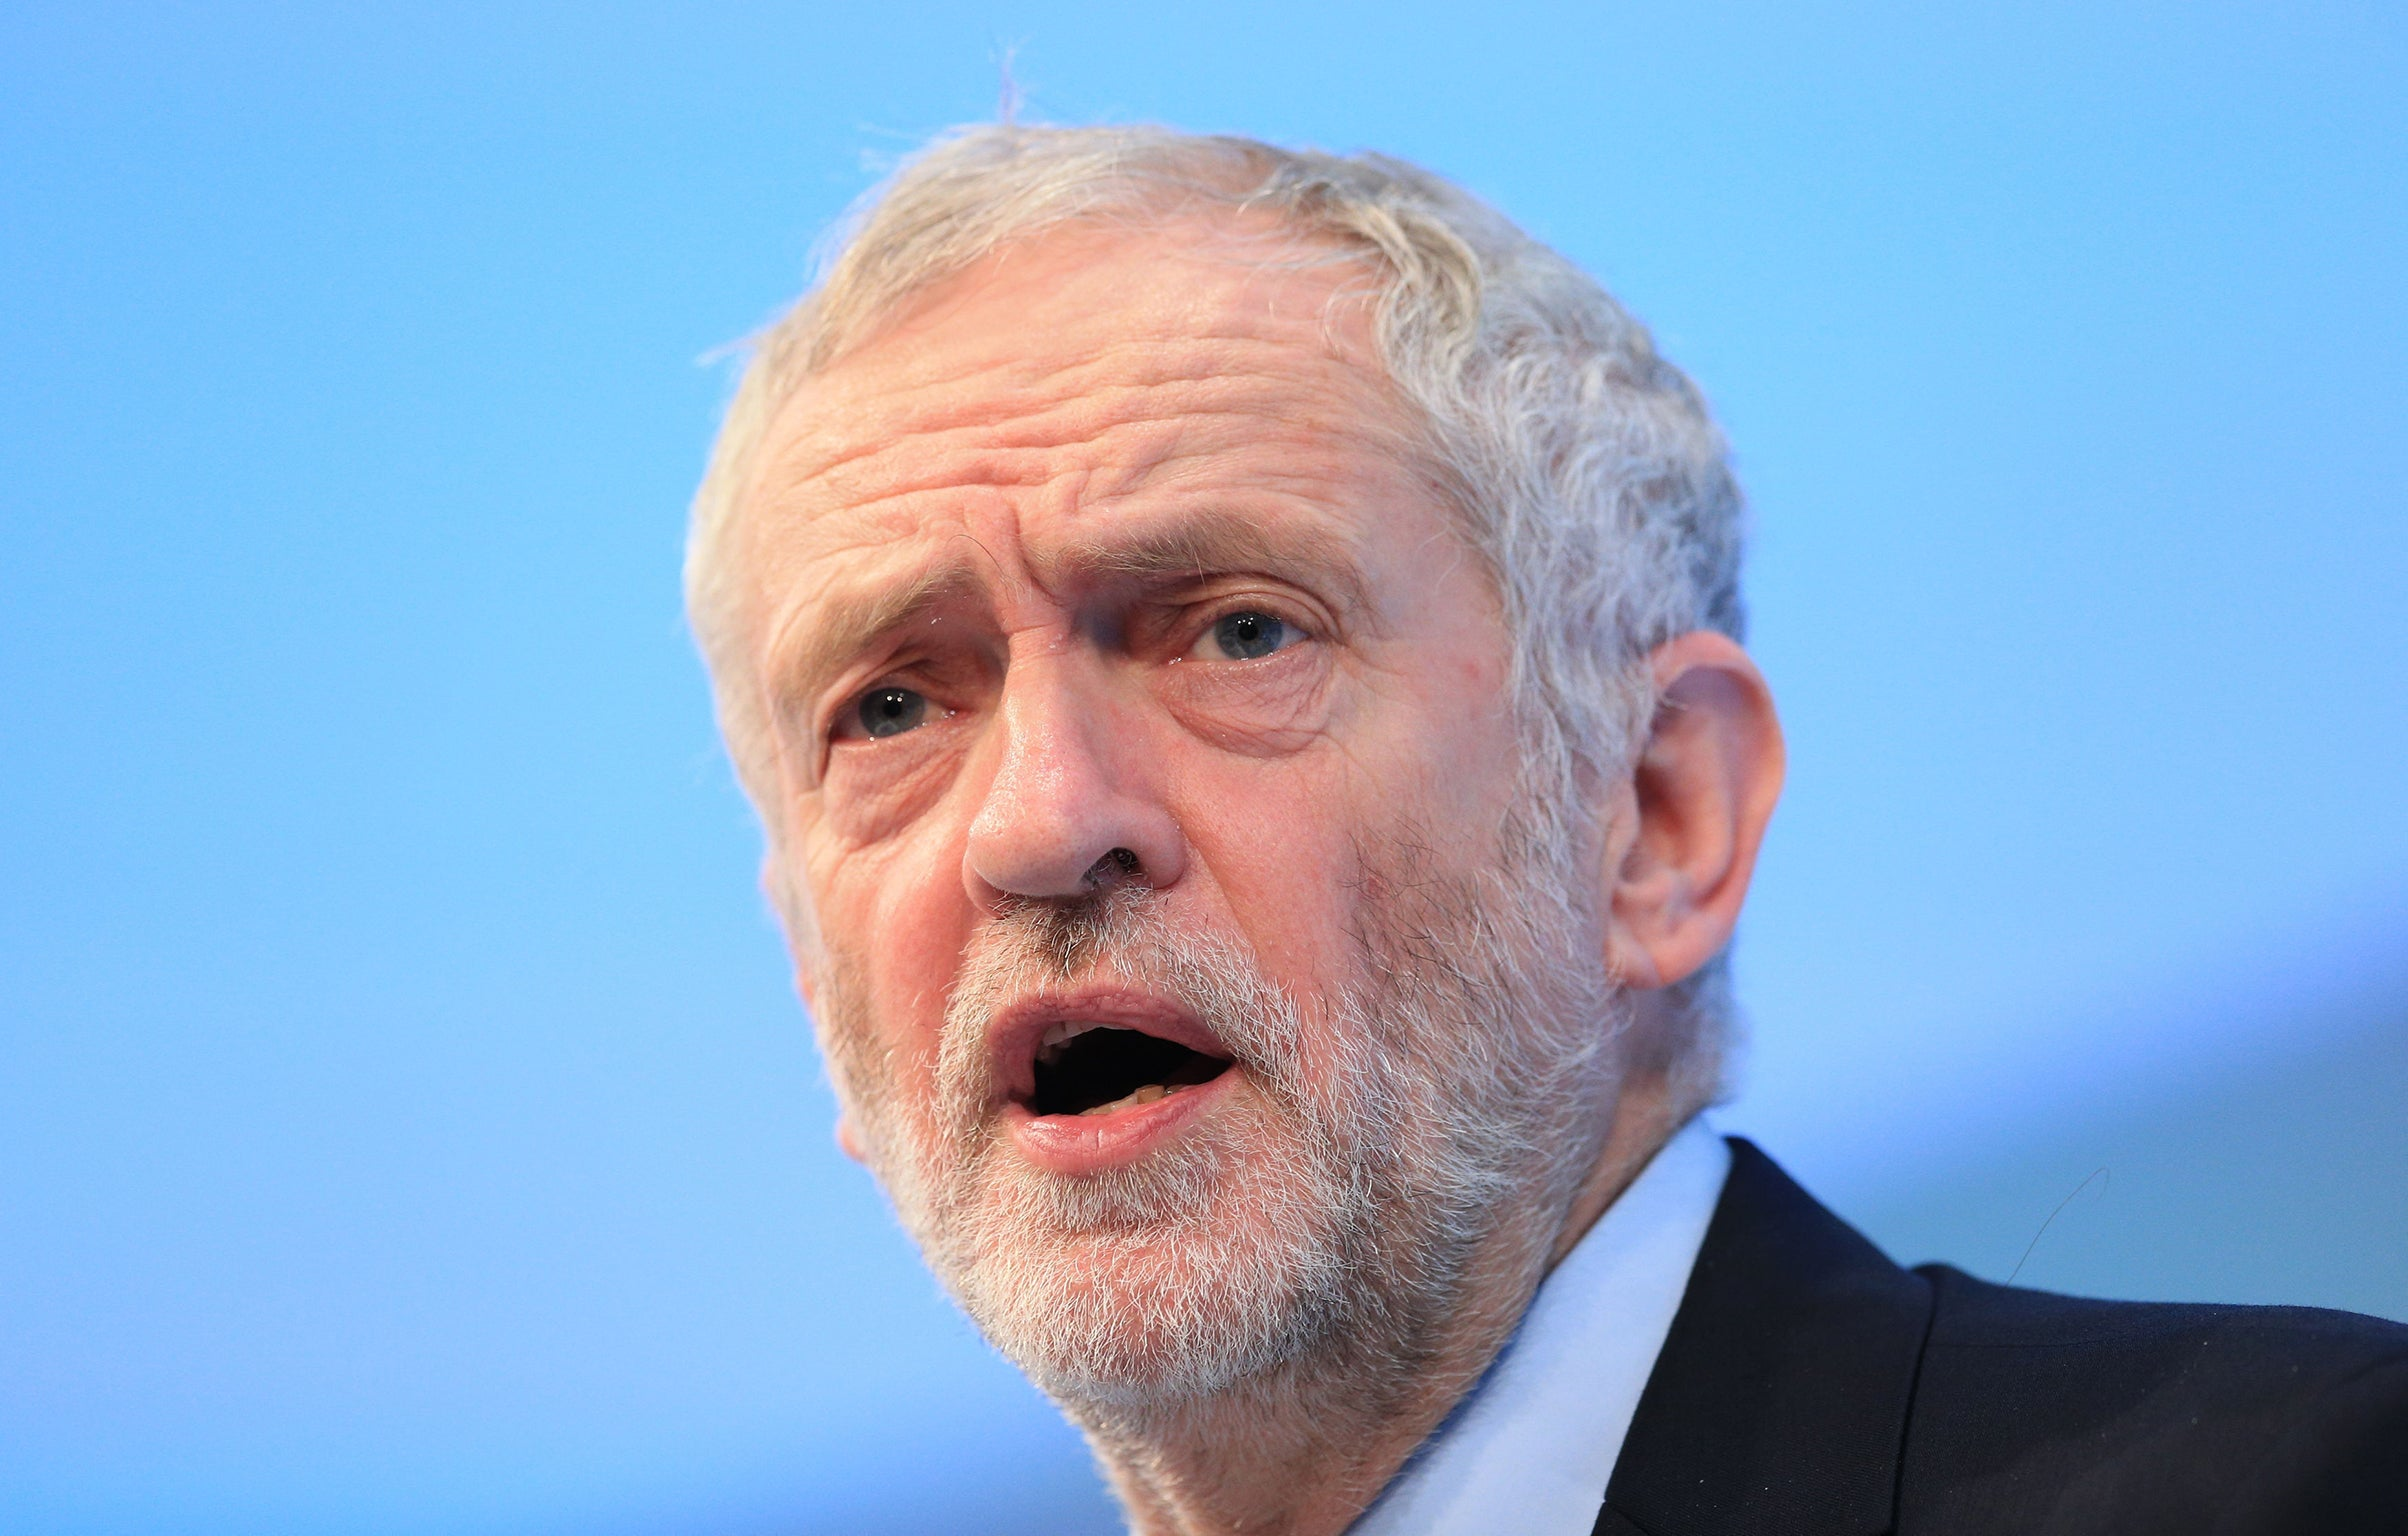 Jeremy Corbyn says Tories are 'making a mockery' of the honours system